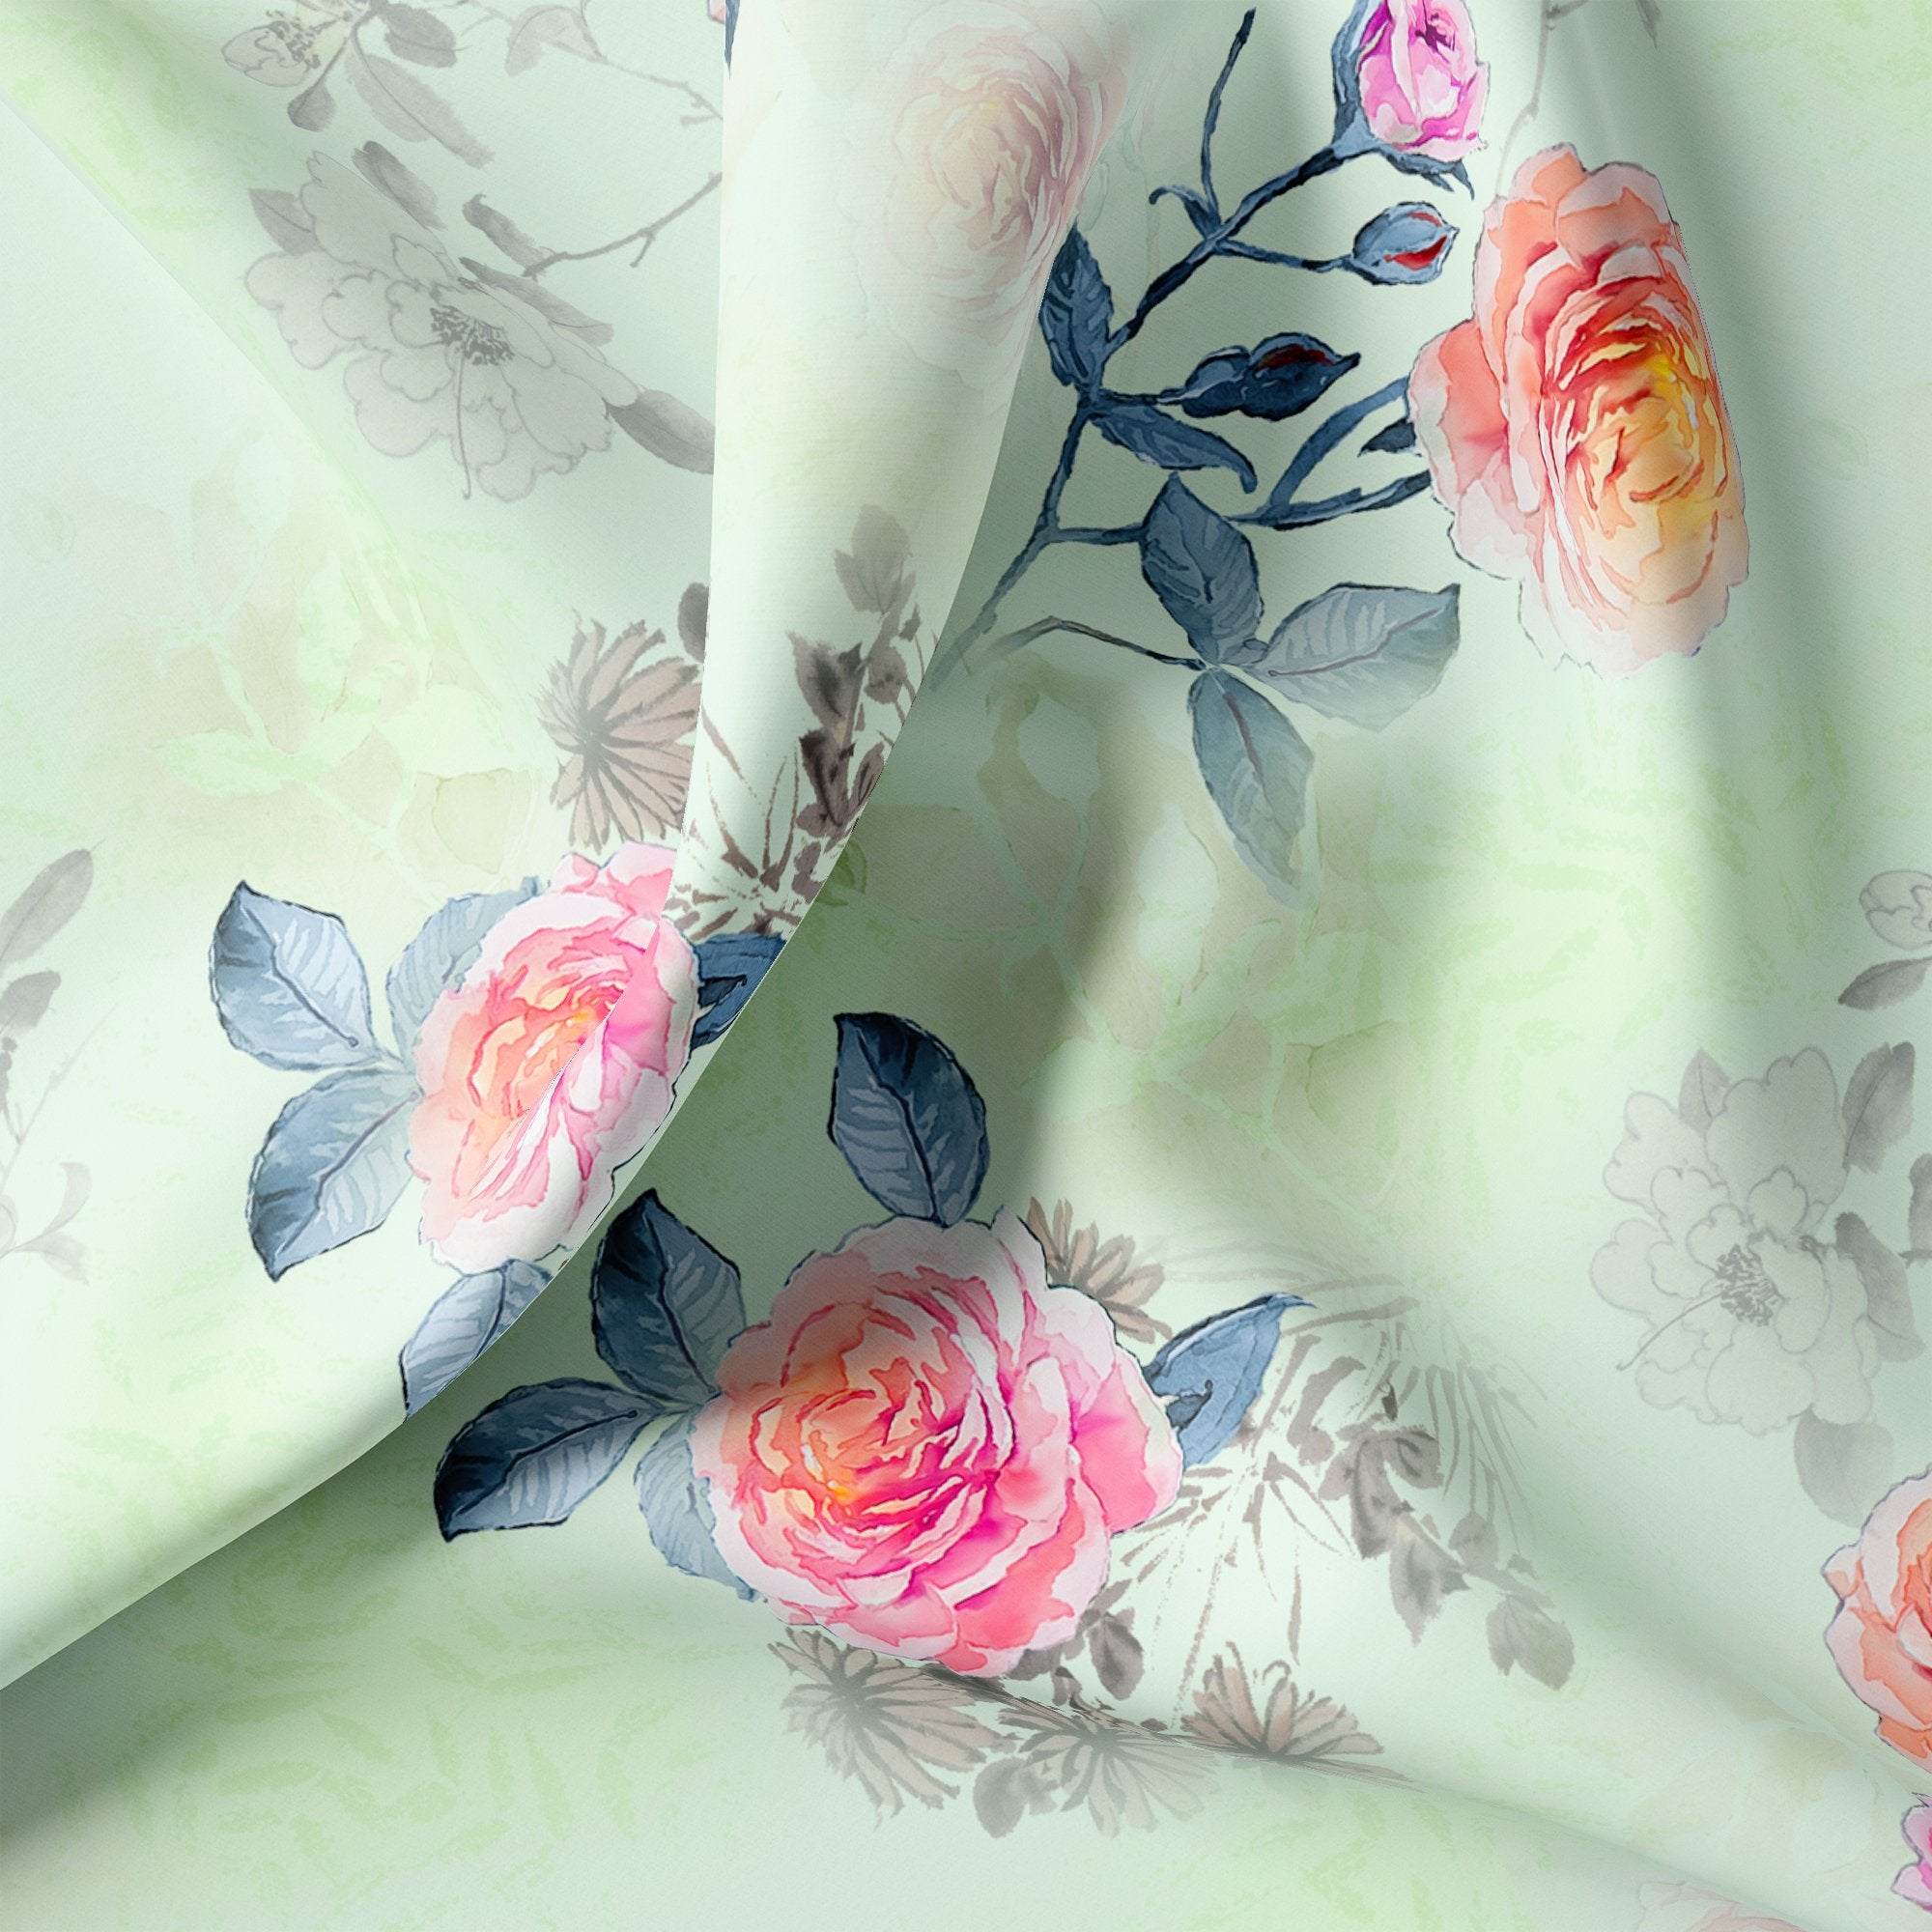 Roses Floating on Pista Base Digital Printed Fabric - FAB VOGUE Studio. Shop Fabric @ www.fabvoguestudio.com